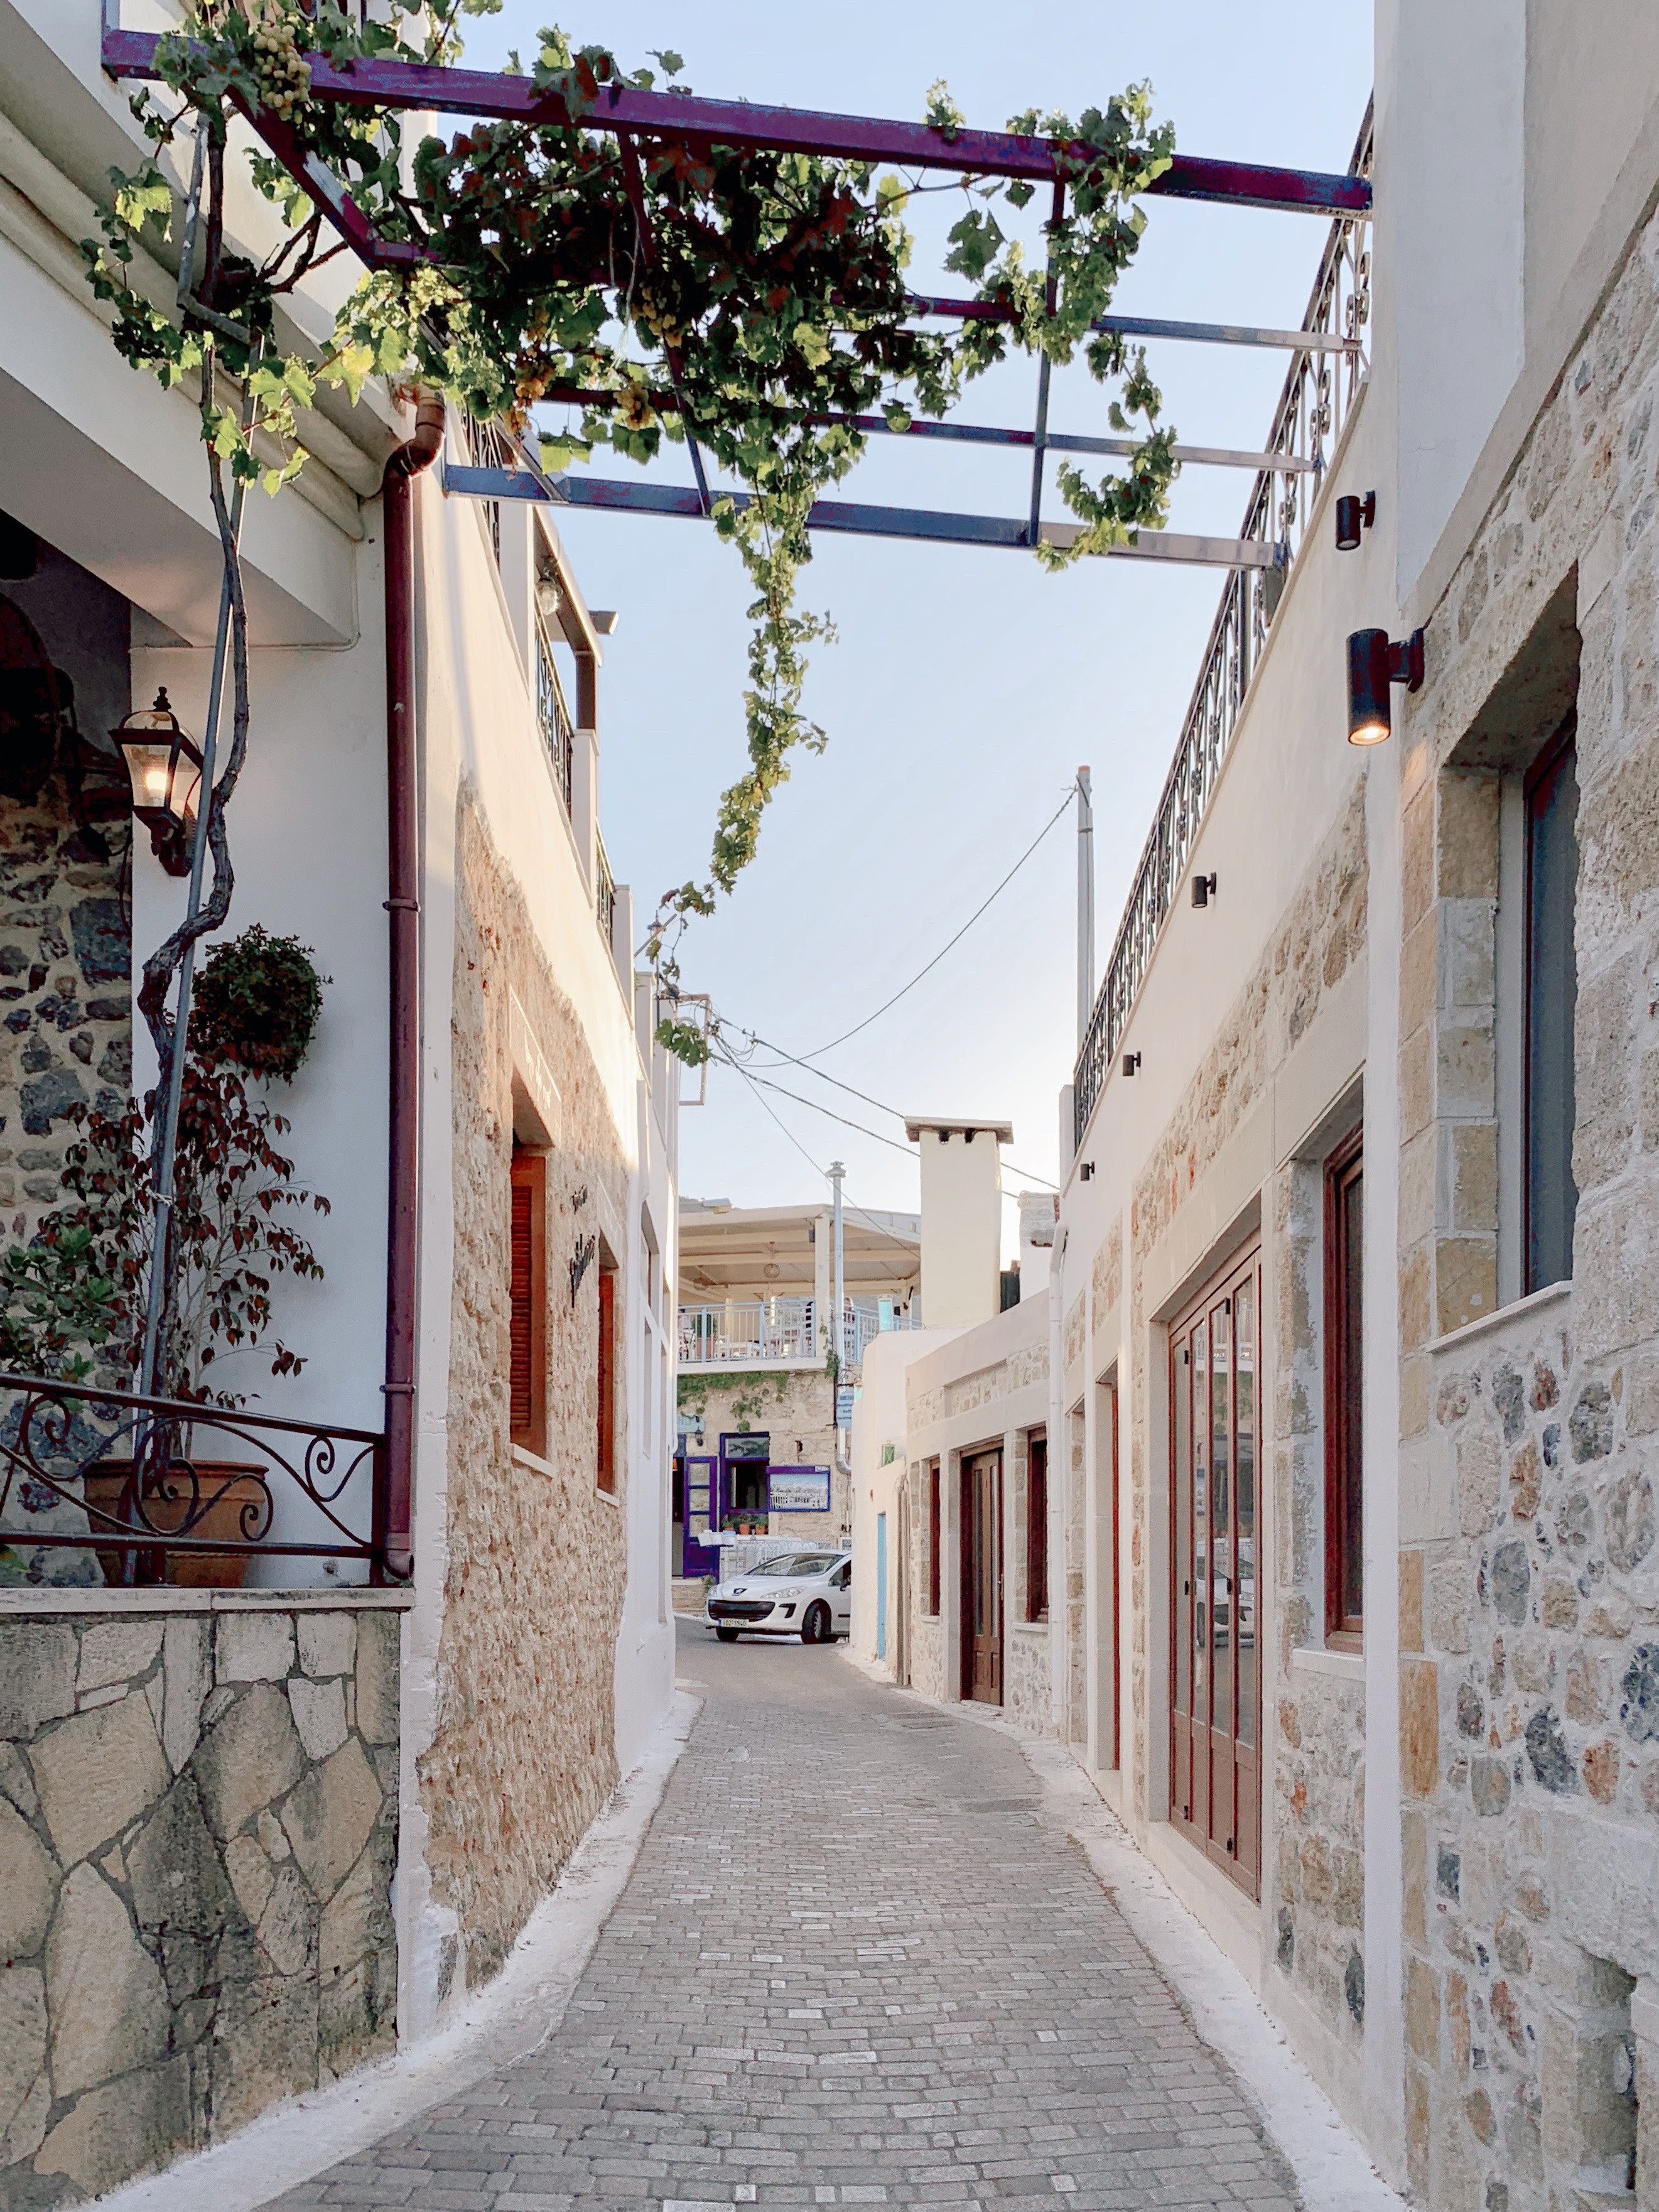 acs 0130 - Crete, Greece